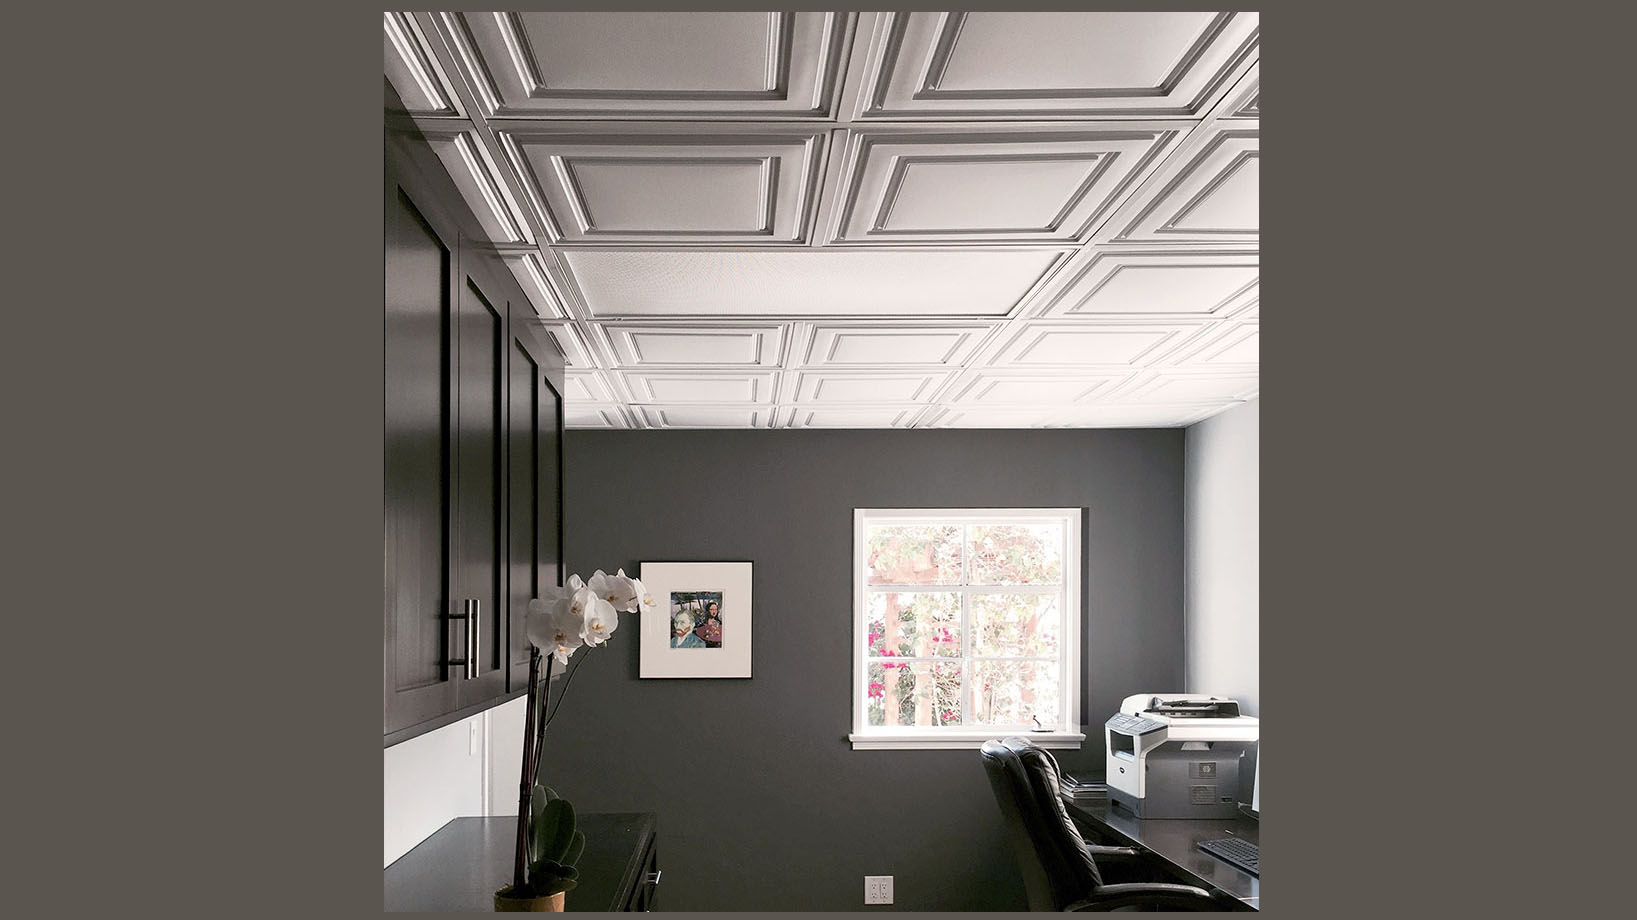 Stratford ceiling tiles choice image tile flooring design ideas ceiling tiles probelle stratford white ceiling tiles doublecrazyfo choice image doublecrazyfo Choice Image